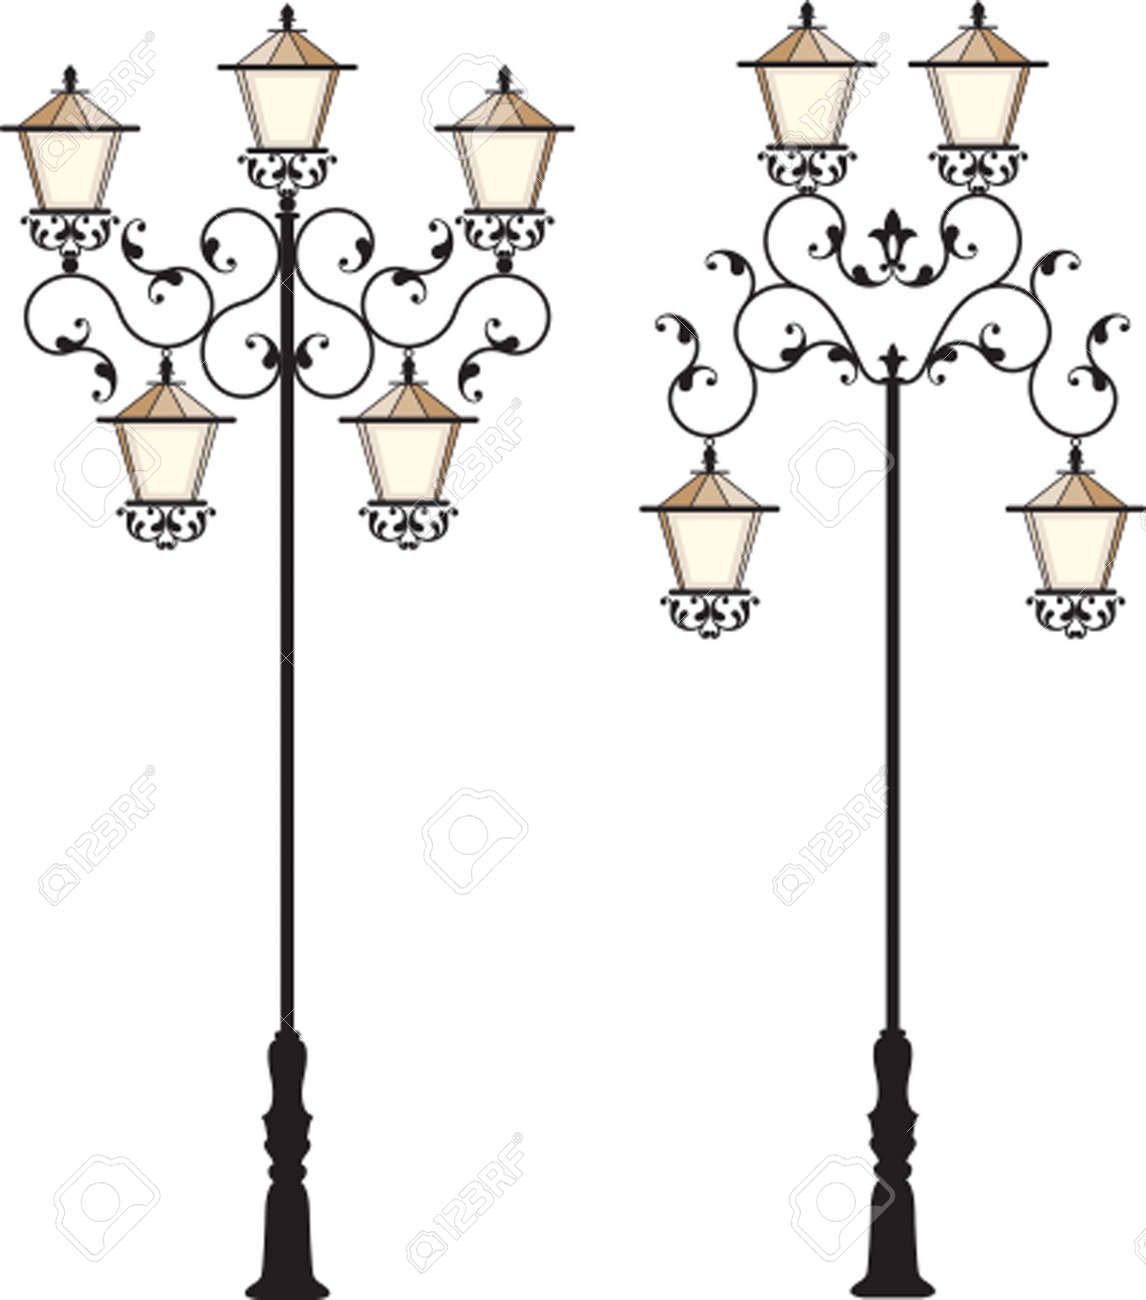 Wrought Iron Street Lamp Post Vector Art Royalty Free Cliparts ... for Street Lamp Post Vector  588gtk